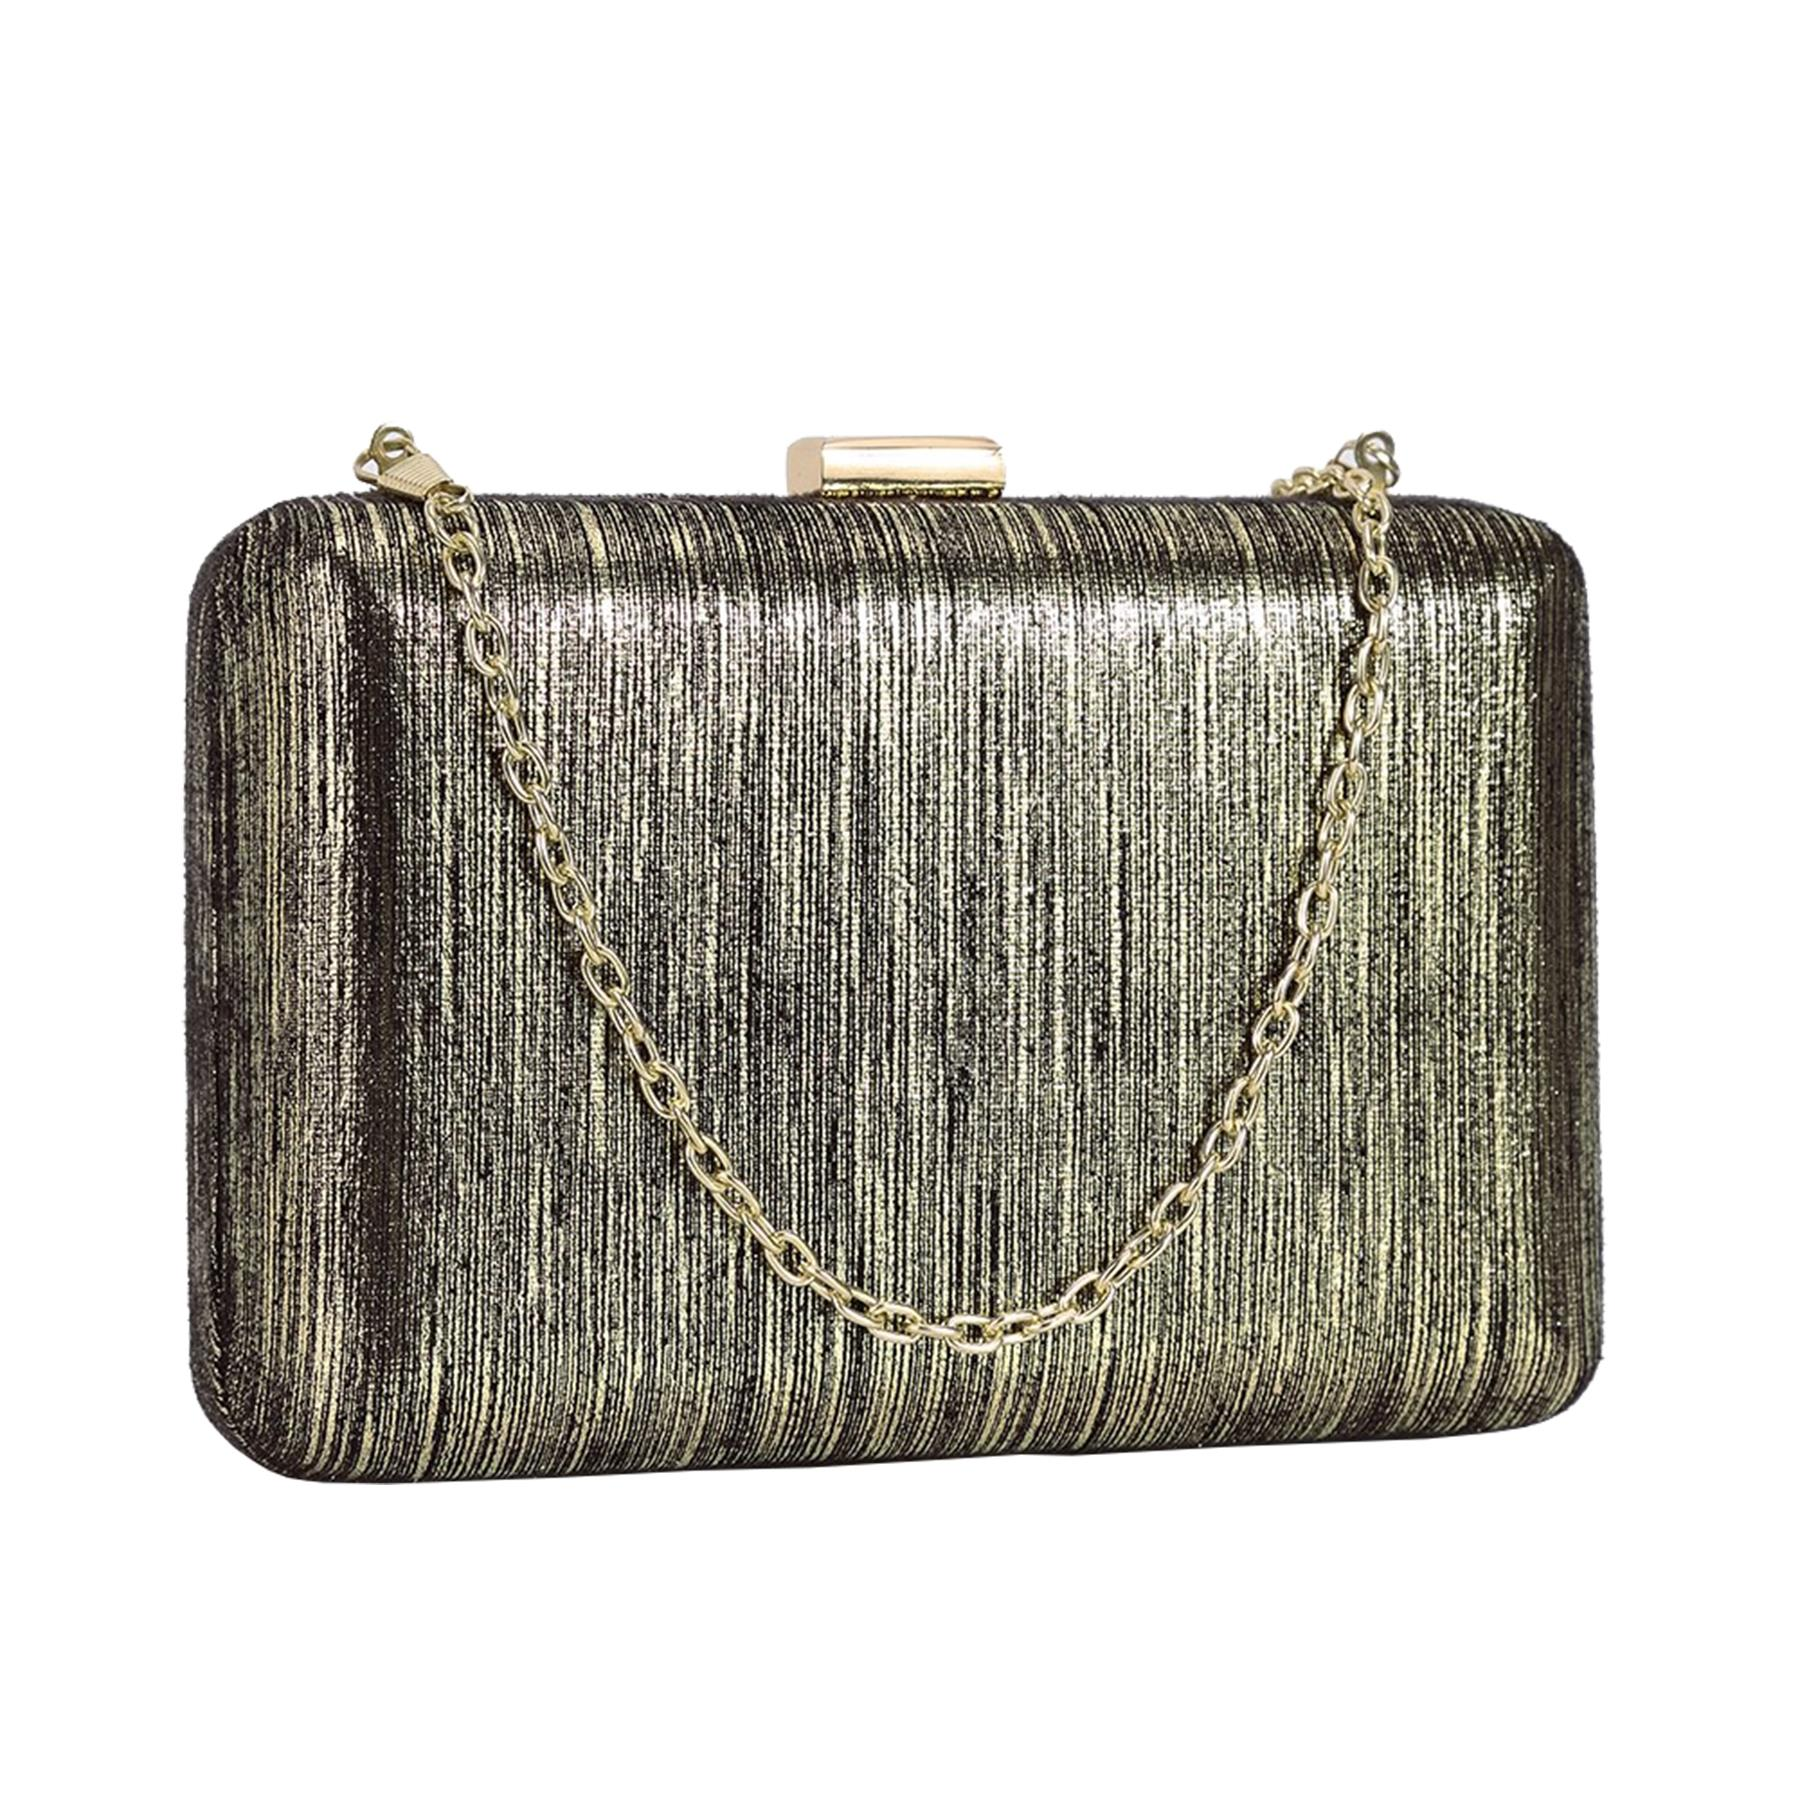 New-Ladies-Hard-Compact-Metallic-Effect-Faux-Leather-Party-Clutch-Bag thumbnail 3